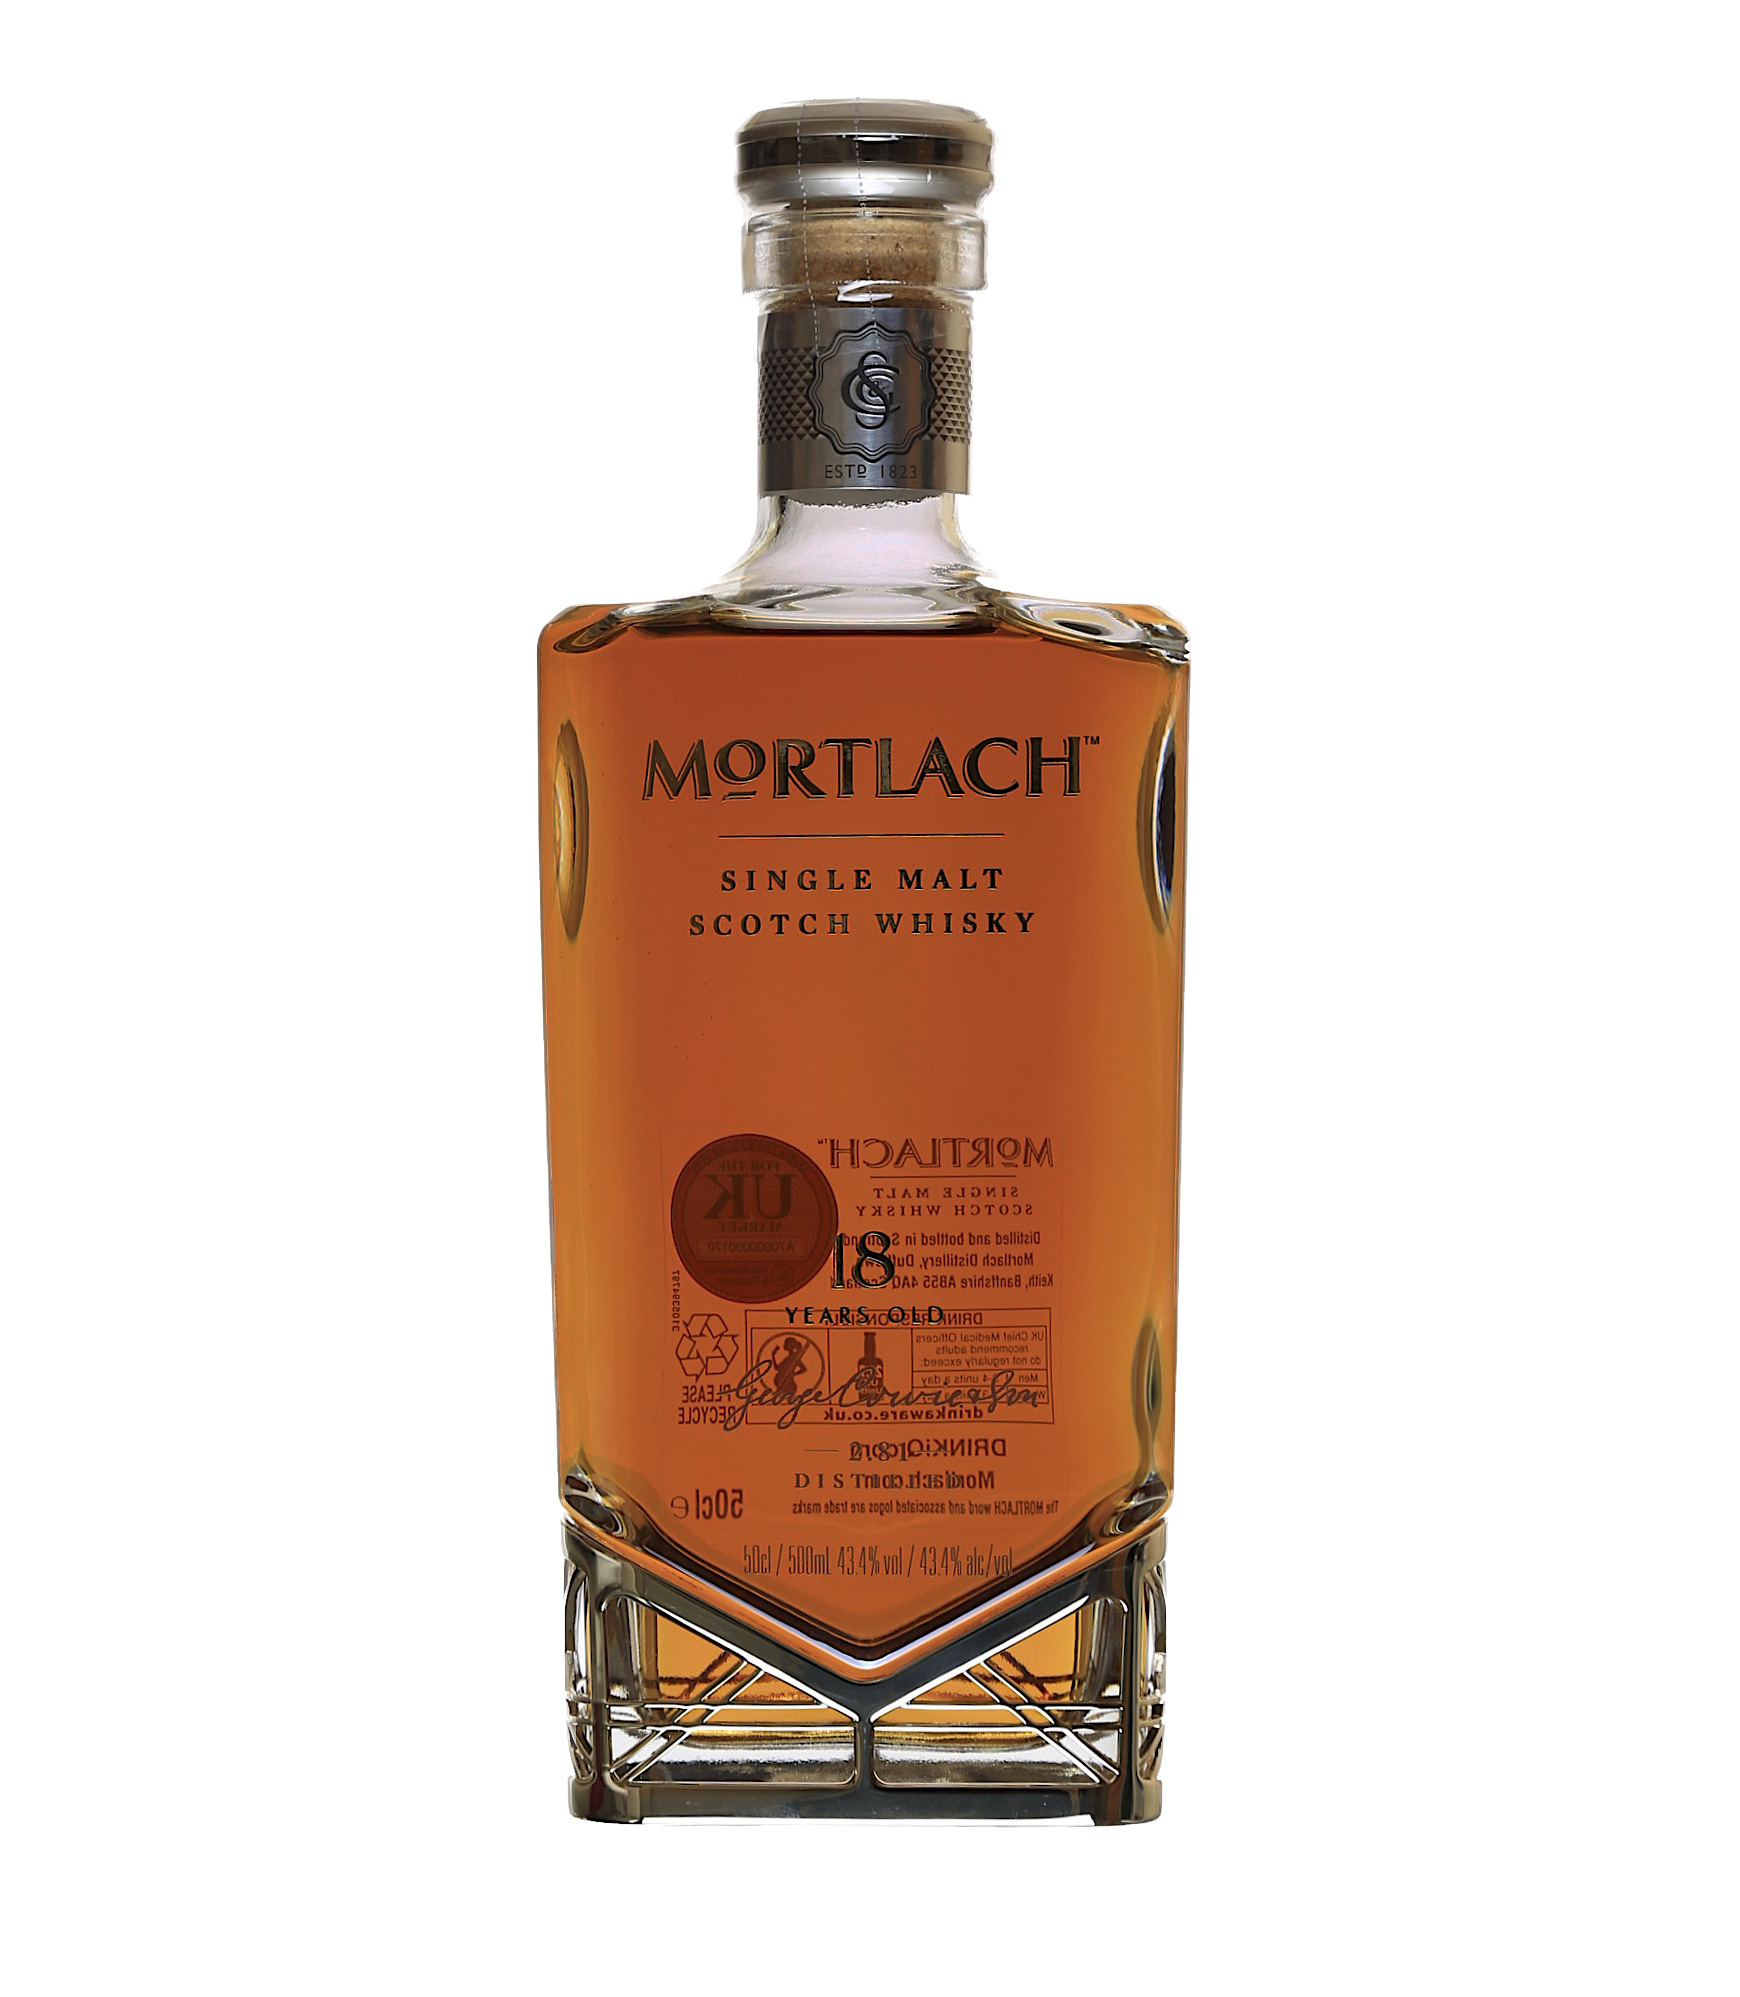 Mortlach, 18y, 50cl | Quay Wines: http://www.quaywines.co.uk/product/mortlach-18y-50cl/